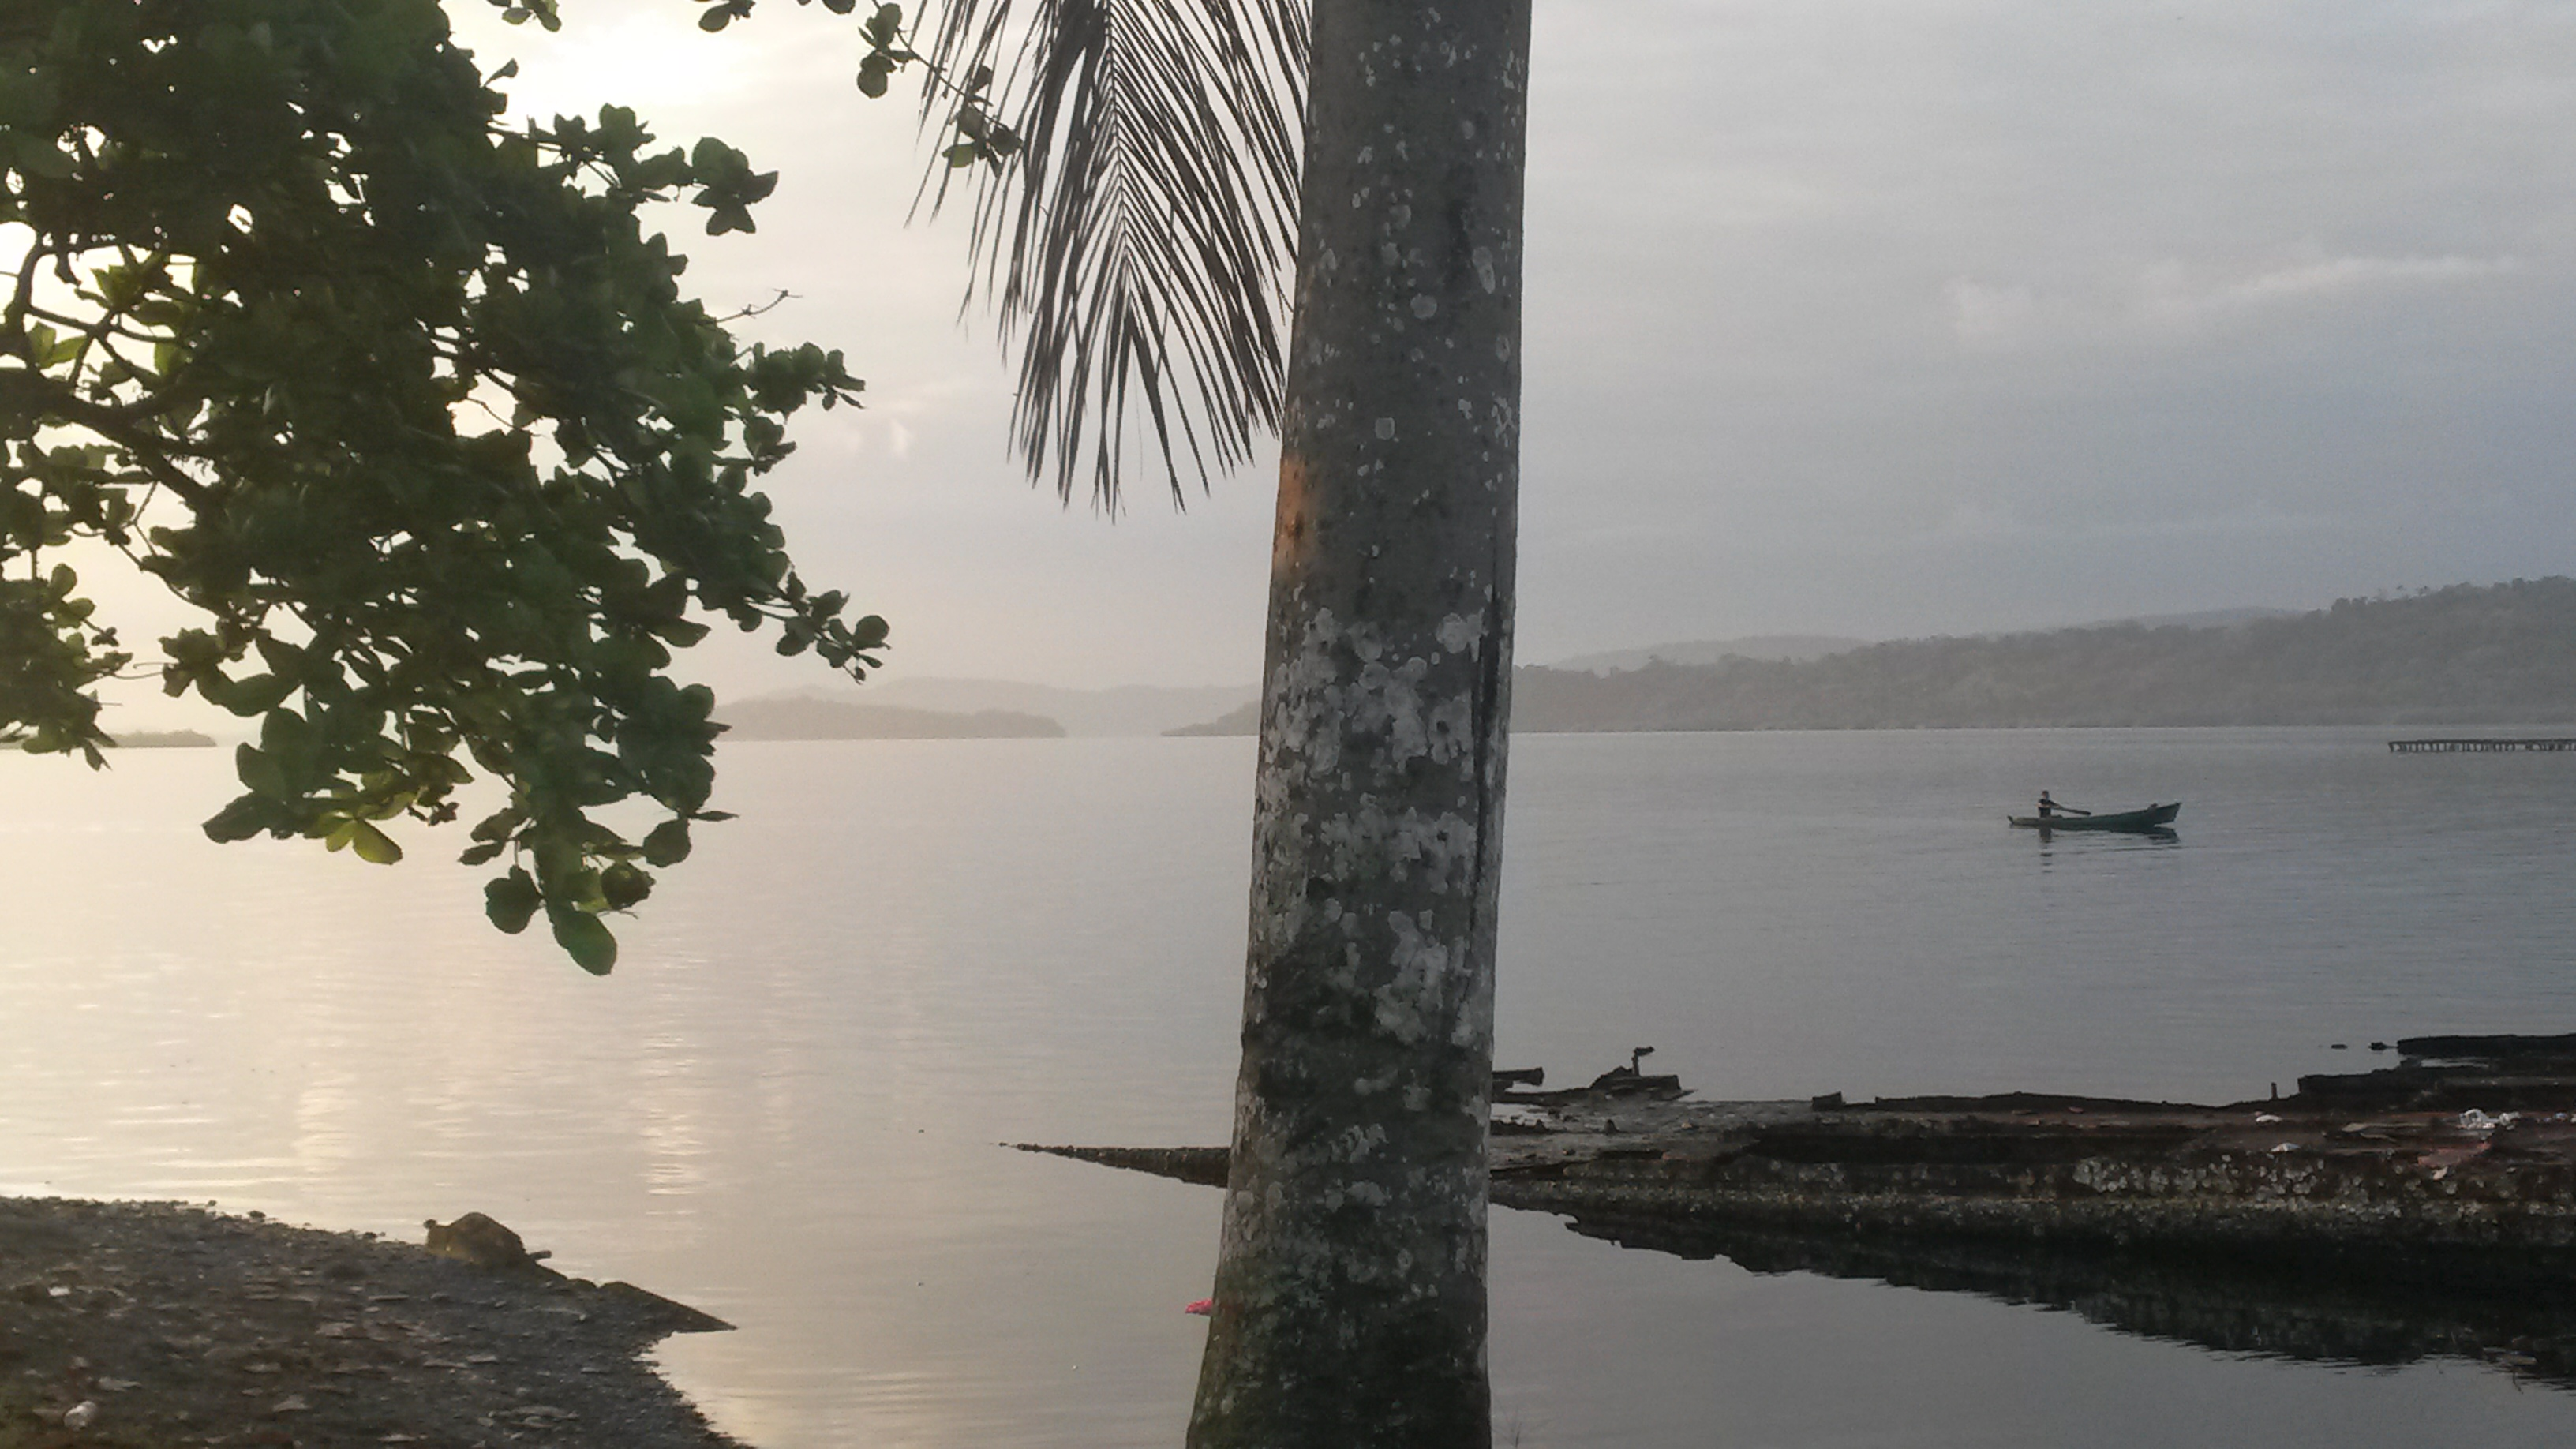 Bocas del Toro – what's in a name?